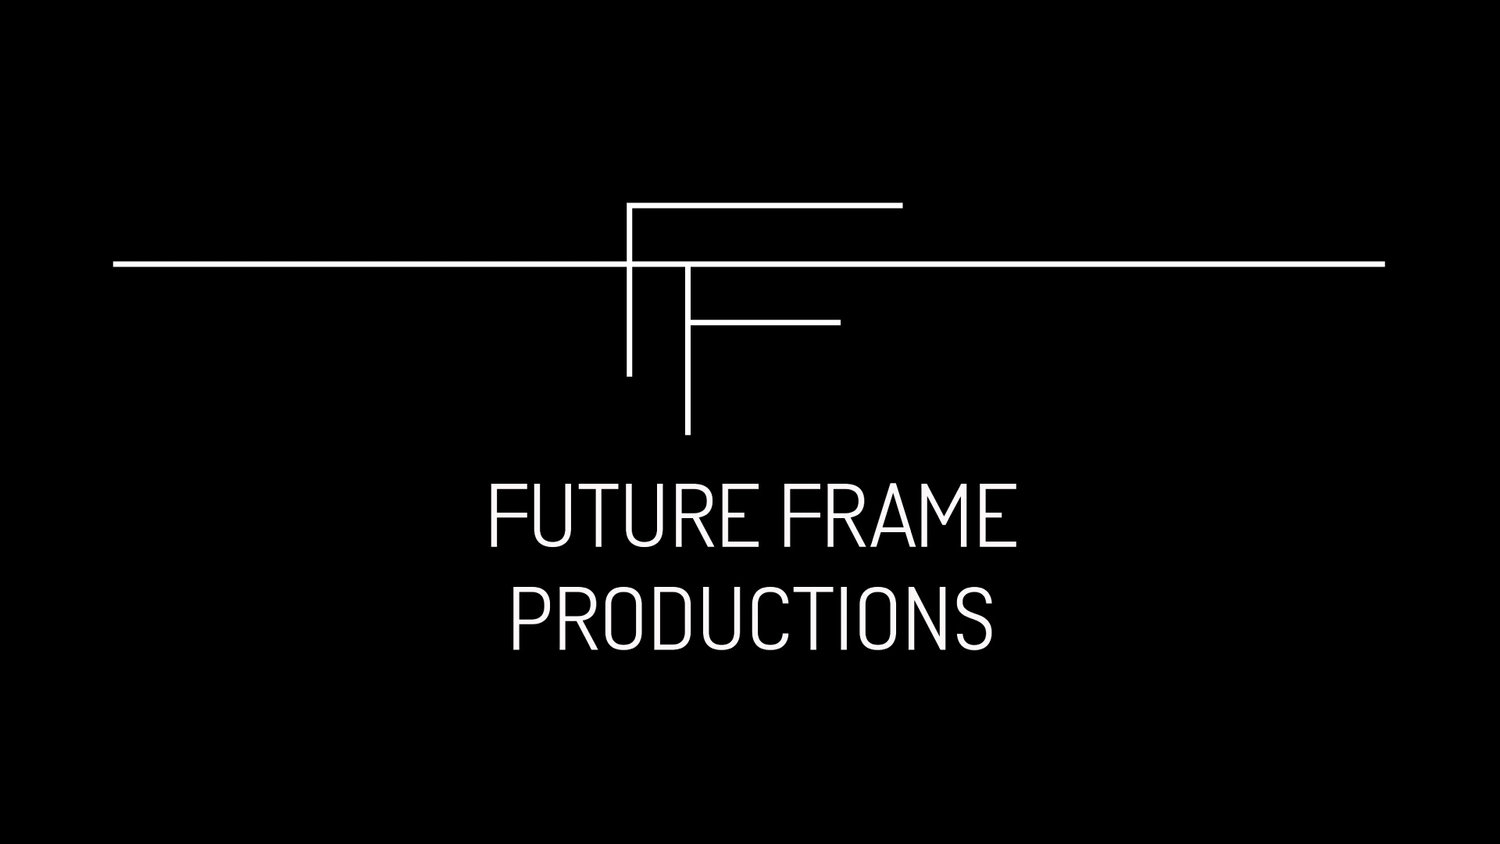 Future Frame Productions